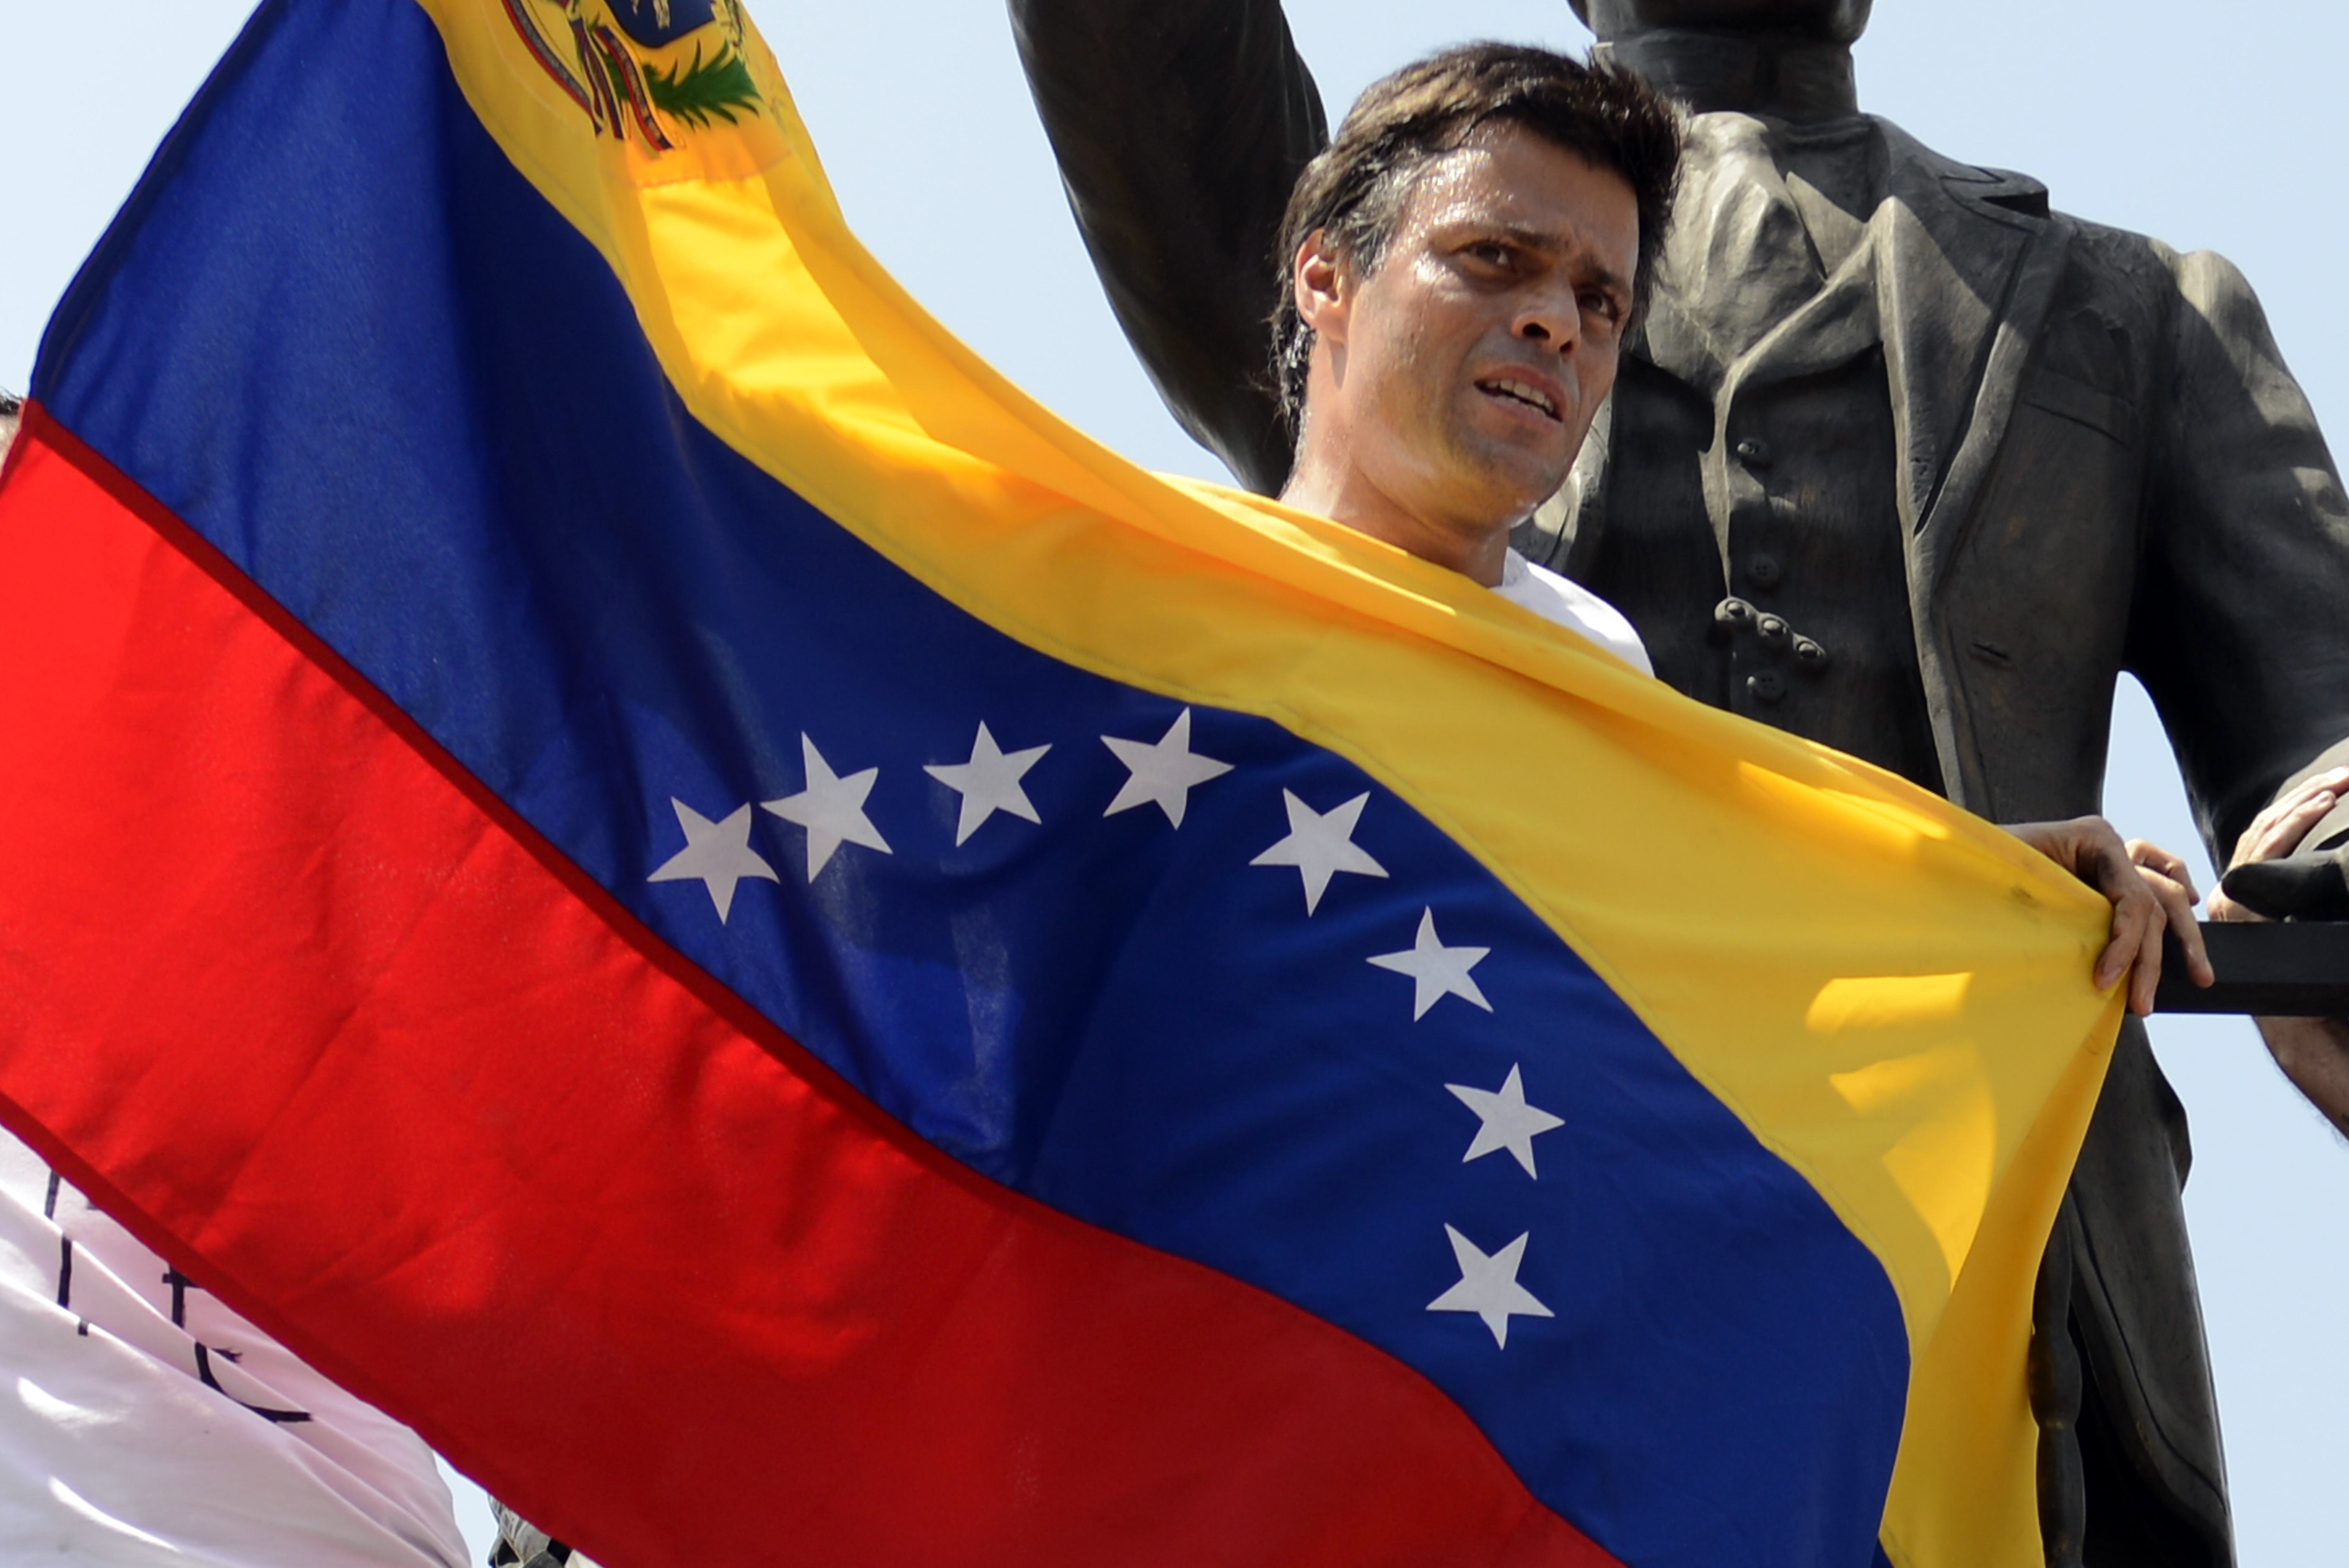 Leopoldo Lopez, an ardent opponent of Venezuela's socialist government facing an arrest warrant after President Nicolas Maduro ordered his arrest on charges of homicide and inciting violence, stands at the monument of Cuba's most important independence-era hero, Jose Marti, as he demonstrates with a national flag in Caracas before turning himself in to authorities, on February 18, 2014. Fugitive Venezuelan opposition leader Lopez, blamed by Maduro for violent clashes that left three people dead last week, appeared at an anti-government rally in eastern Caracas and quickly surrendered to the National Guard after delivering a brief speech. AFP PHOTO / LEO RAMIREZ